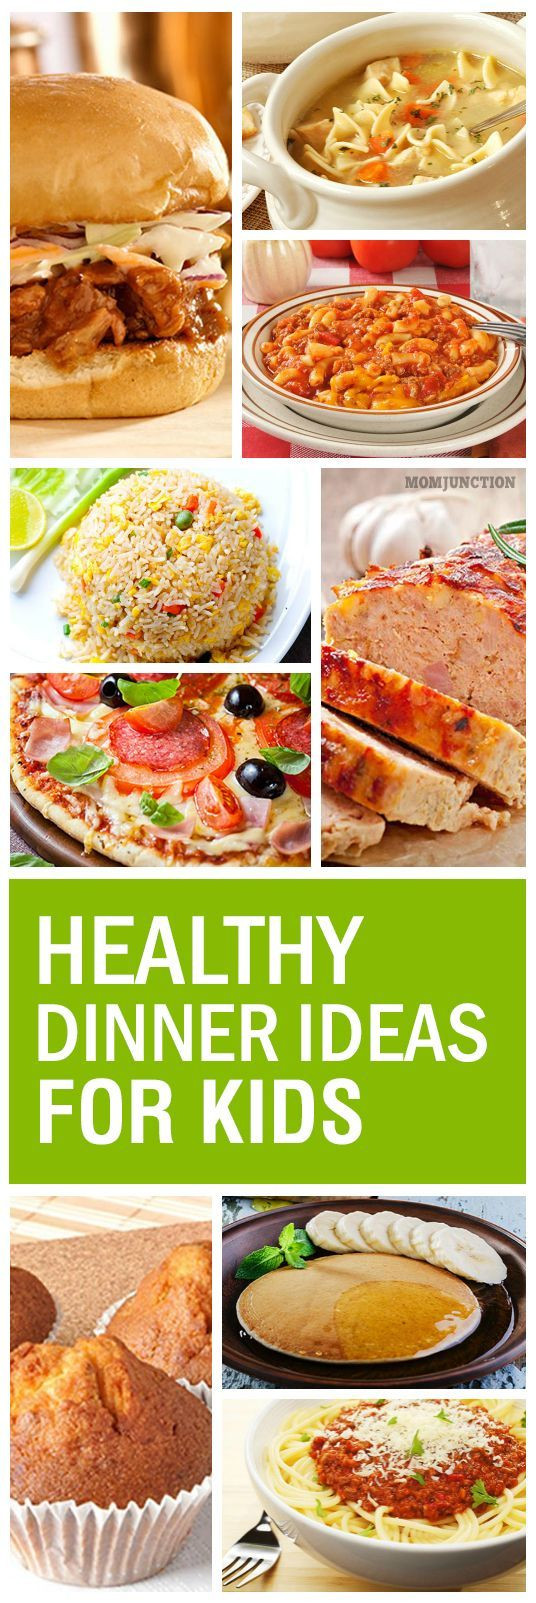 Quick Healthy Kid Friendly Dinners  15 Quick And Yummy Dinner Recipes For Kids